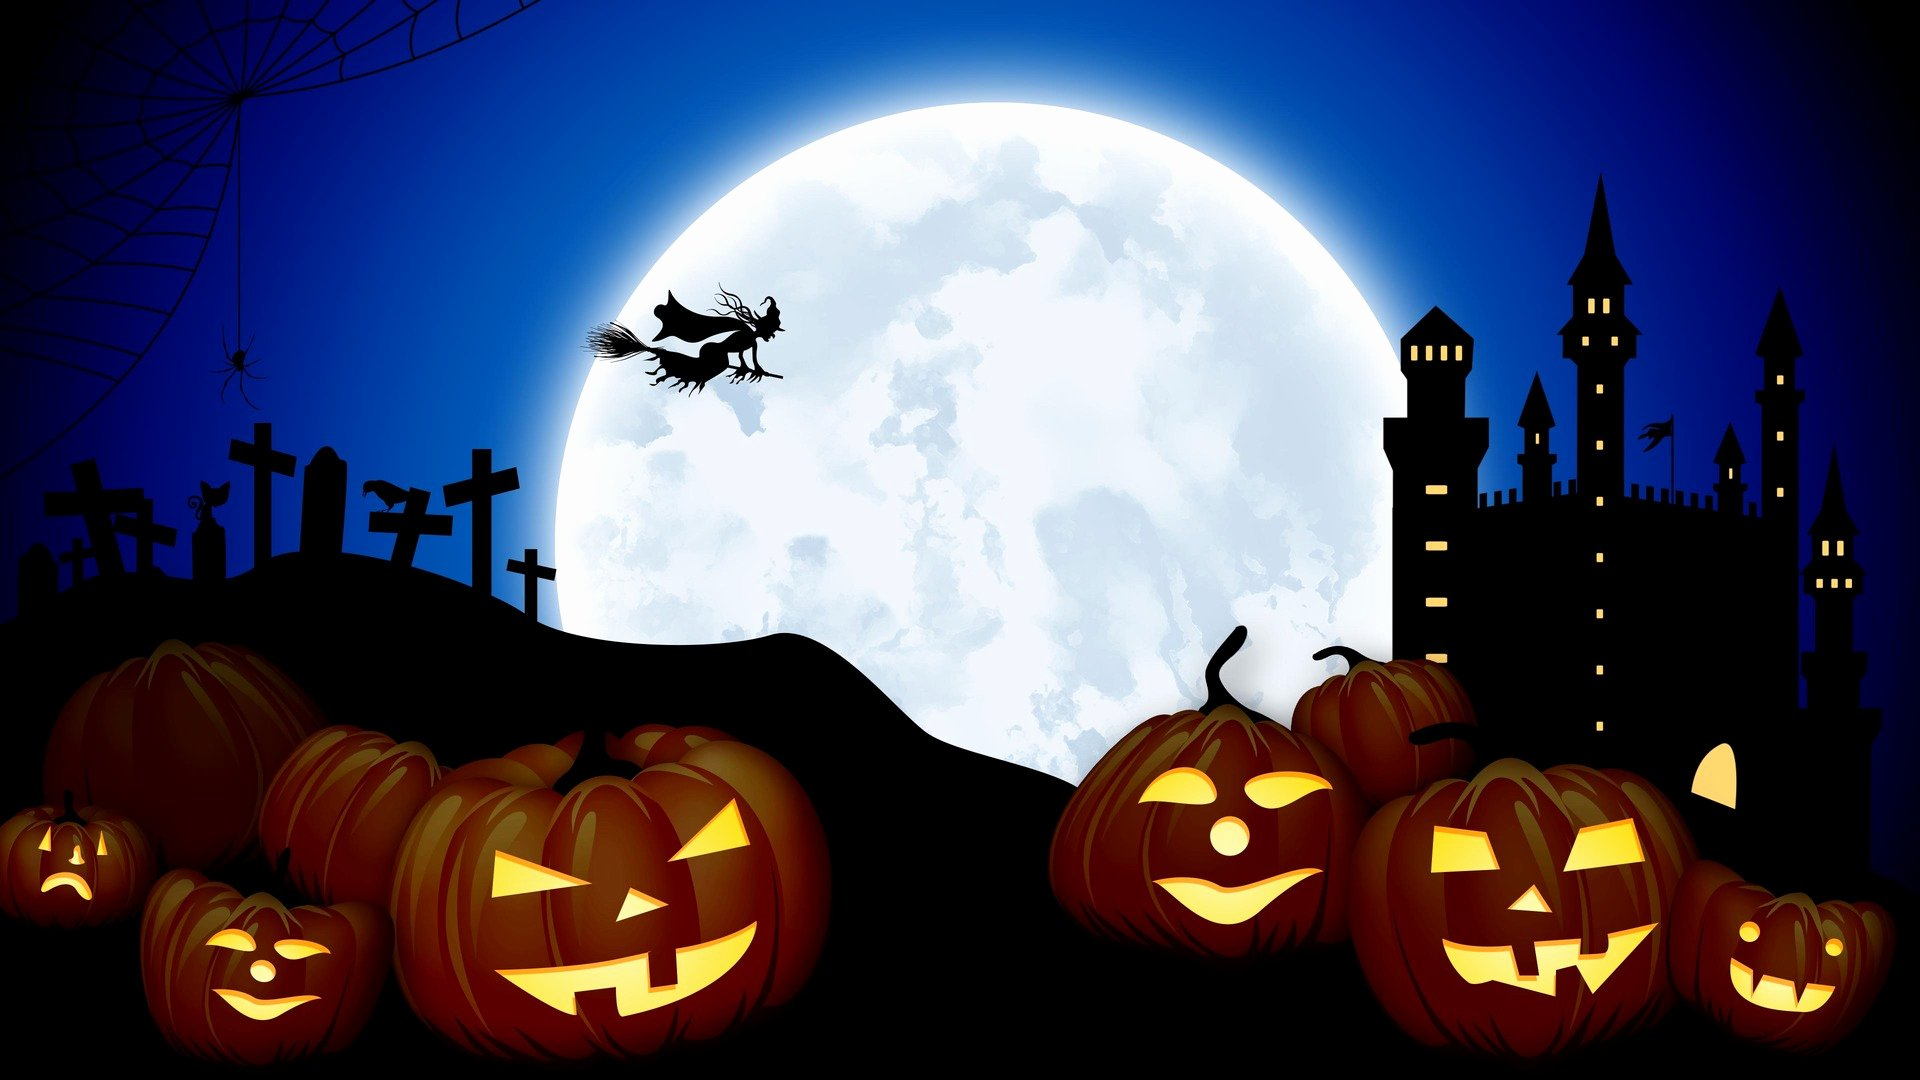 Free Halloween Background Images Awesome Download Free Halloween Wallpaper for Mac Os X El Capitan and Windows 10